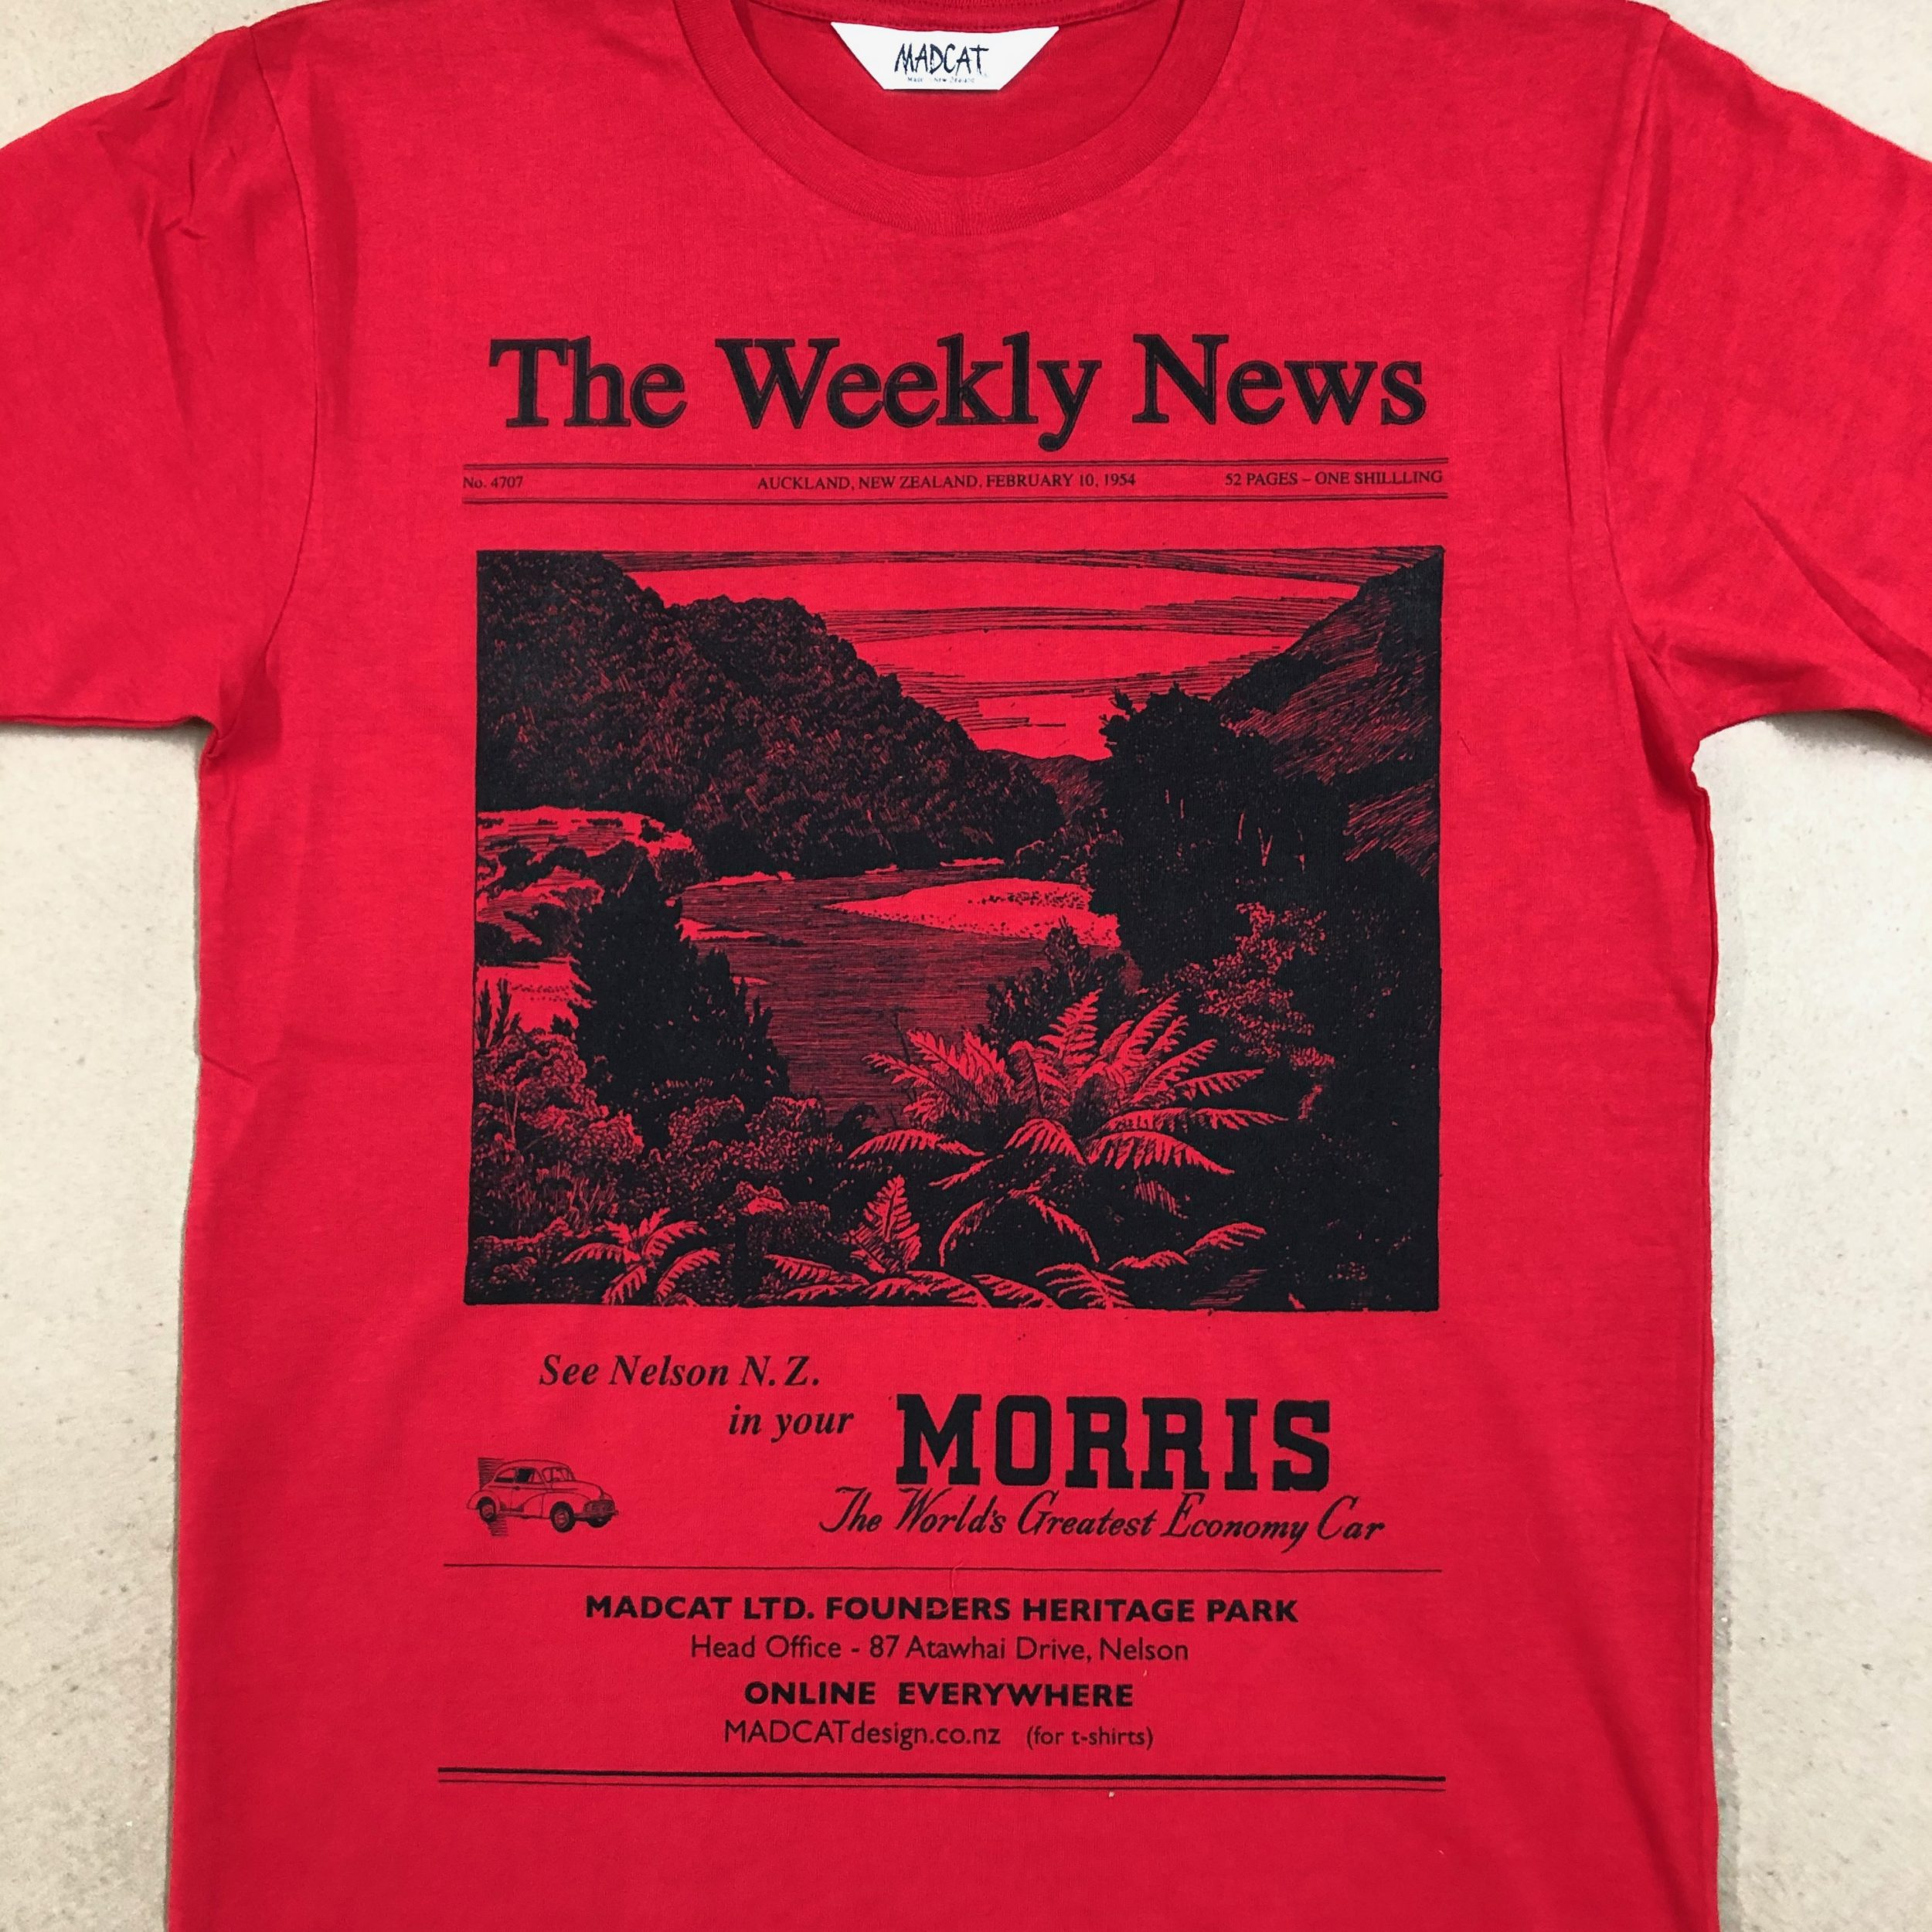 The Weekly News T shirt for Men, Red